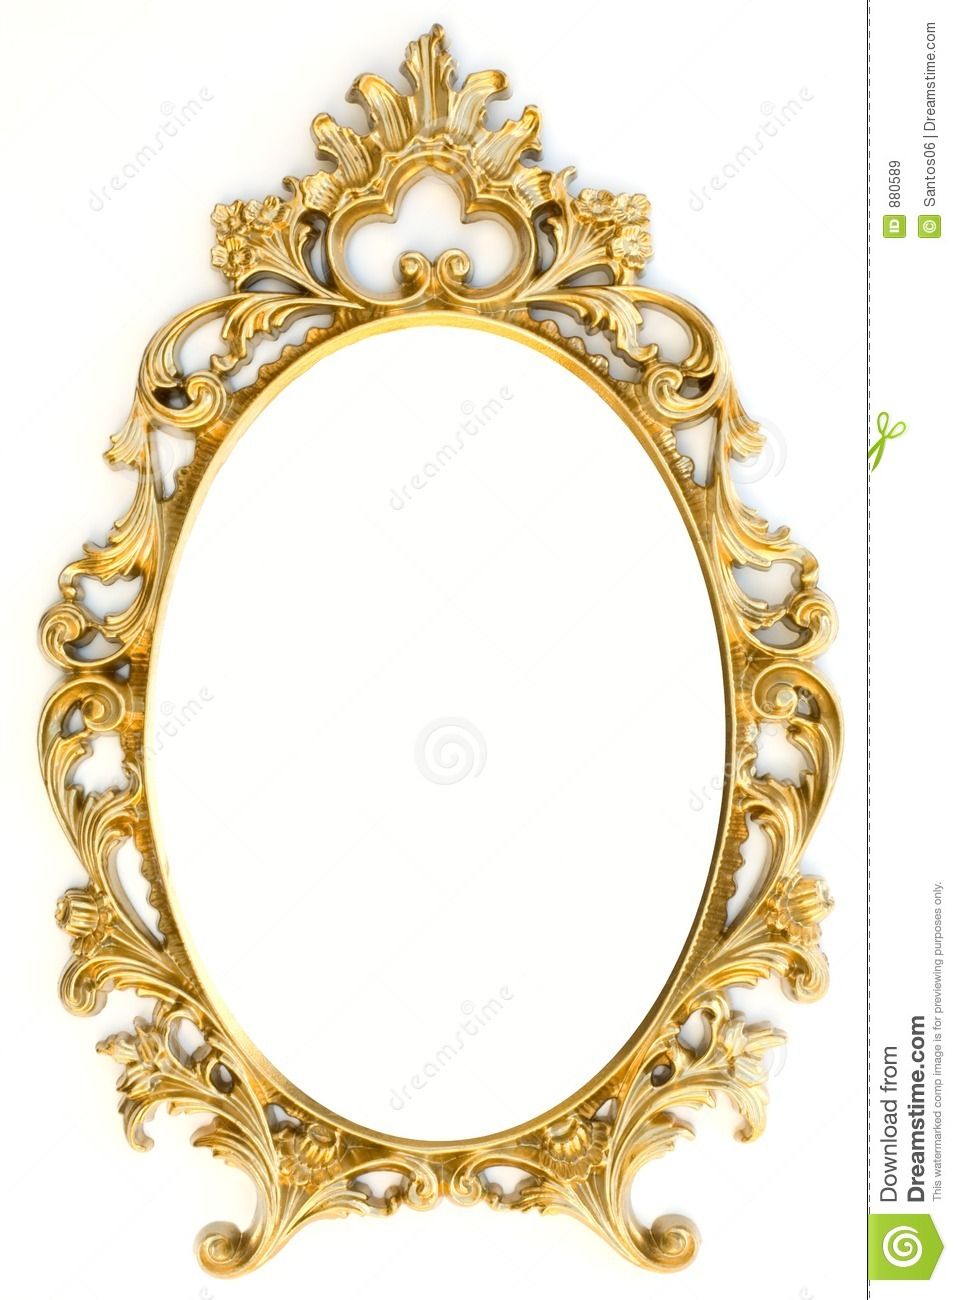 Golden Picture Frame Stock Image Image Of High Glisten